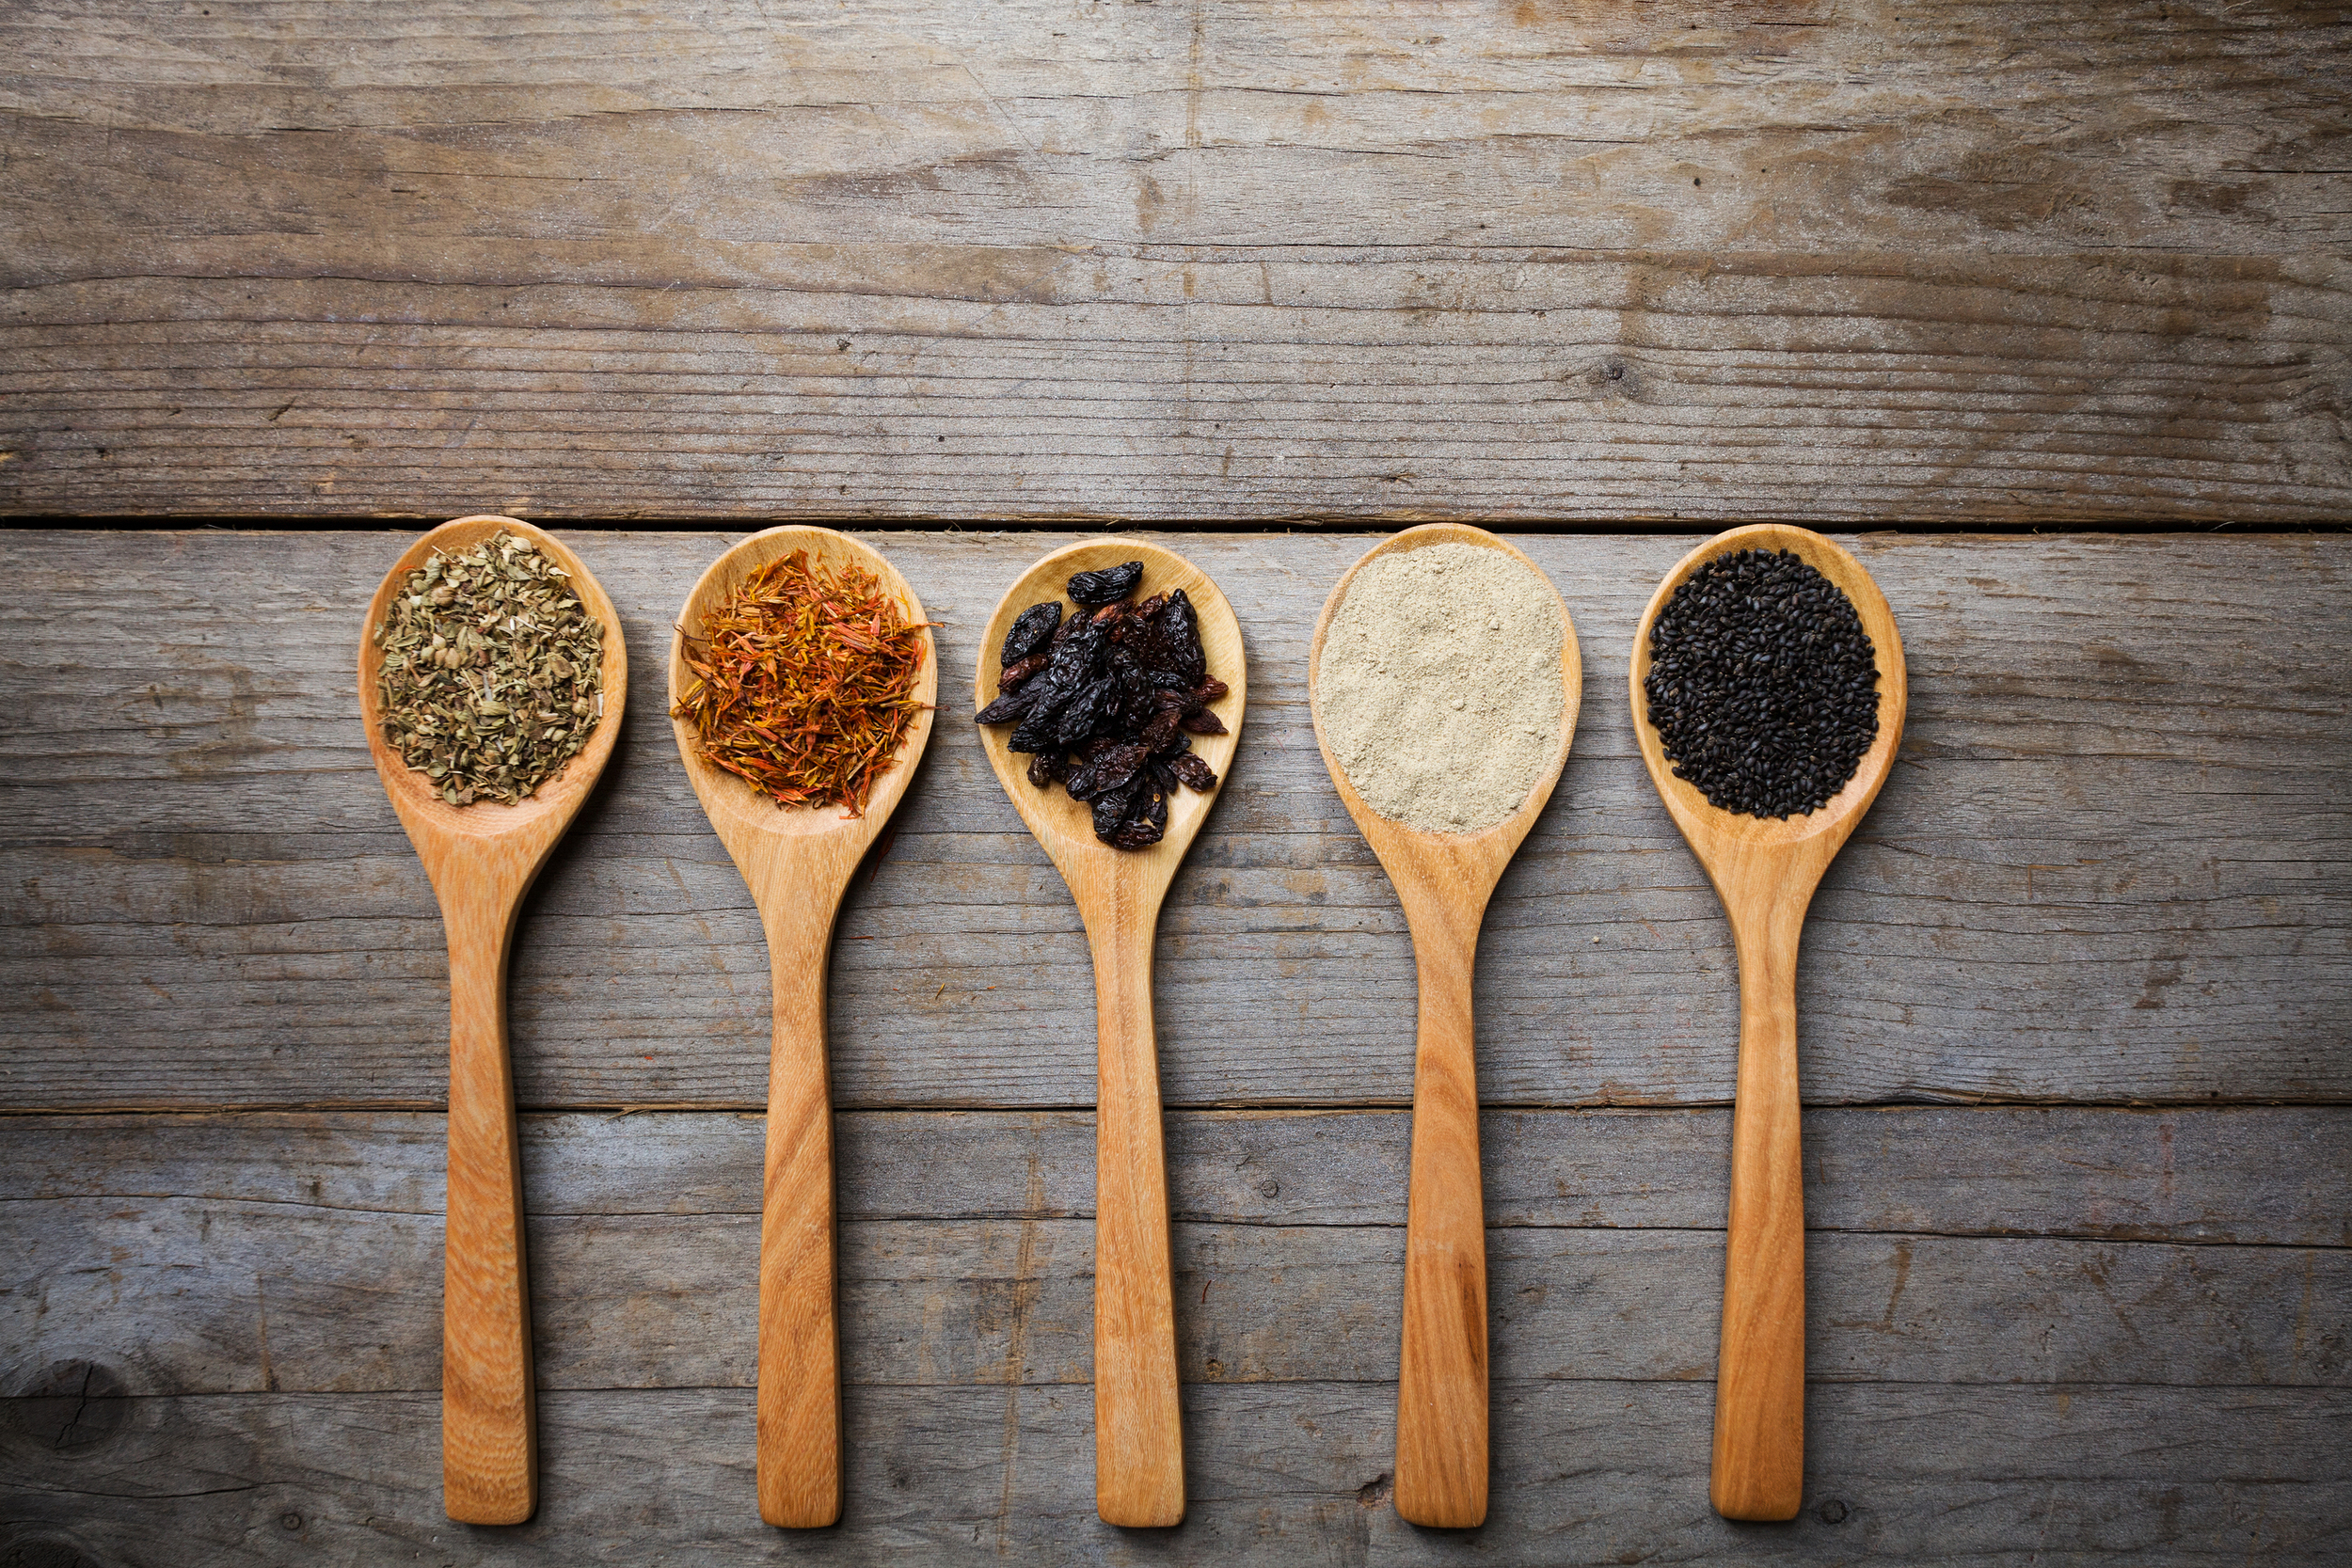 bigstock-Spices-On-Wood-Spoons-90624242.jpg